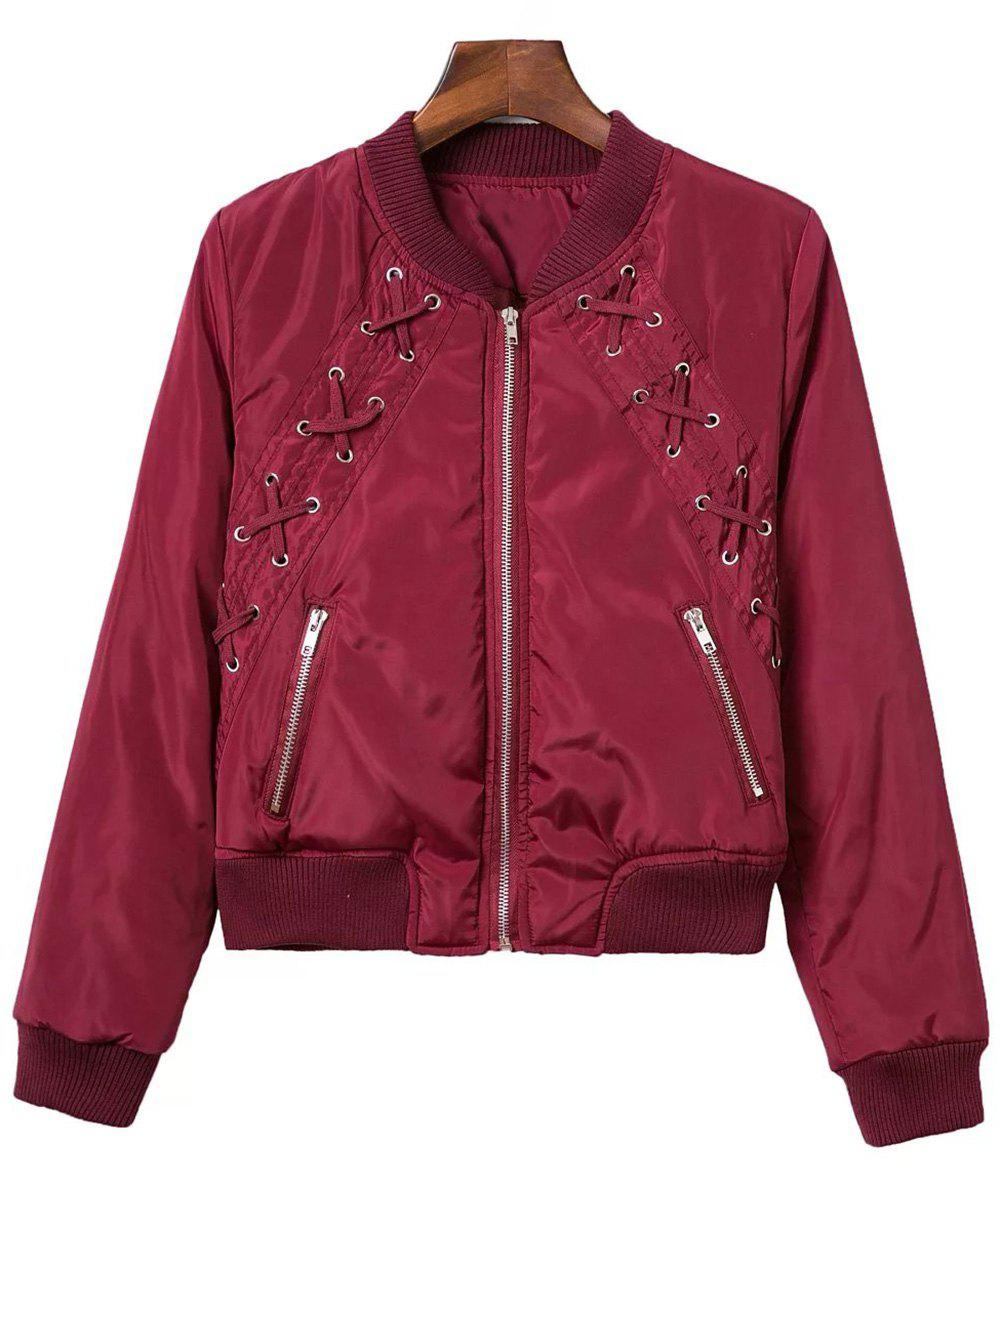 Lace Up Stand Neck Zipper Jacket